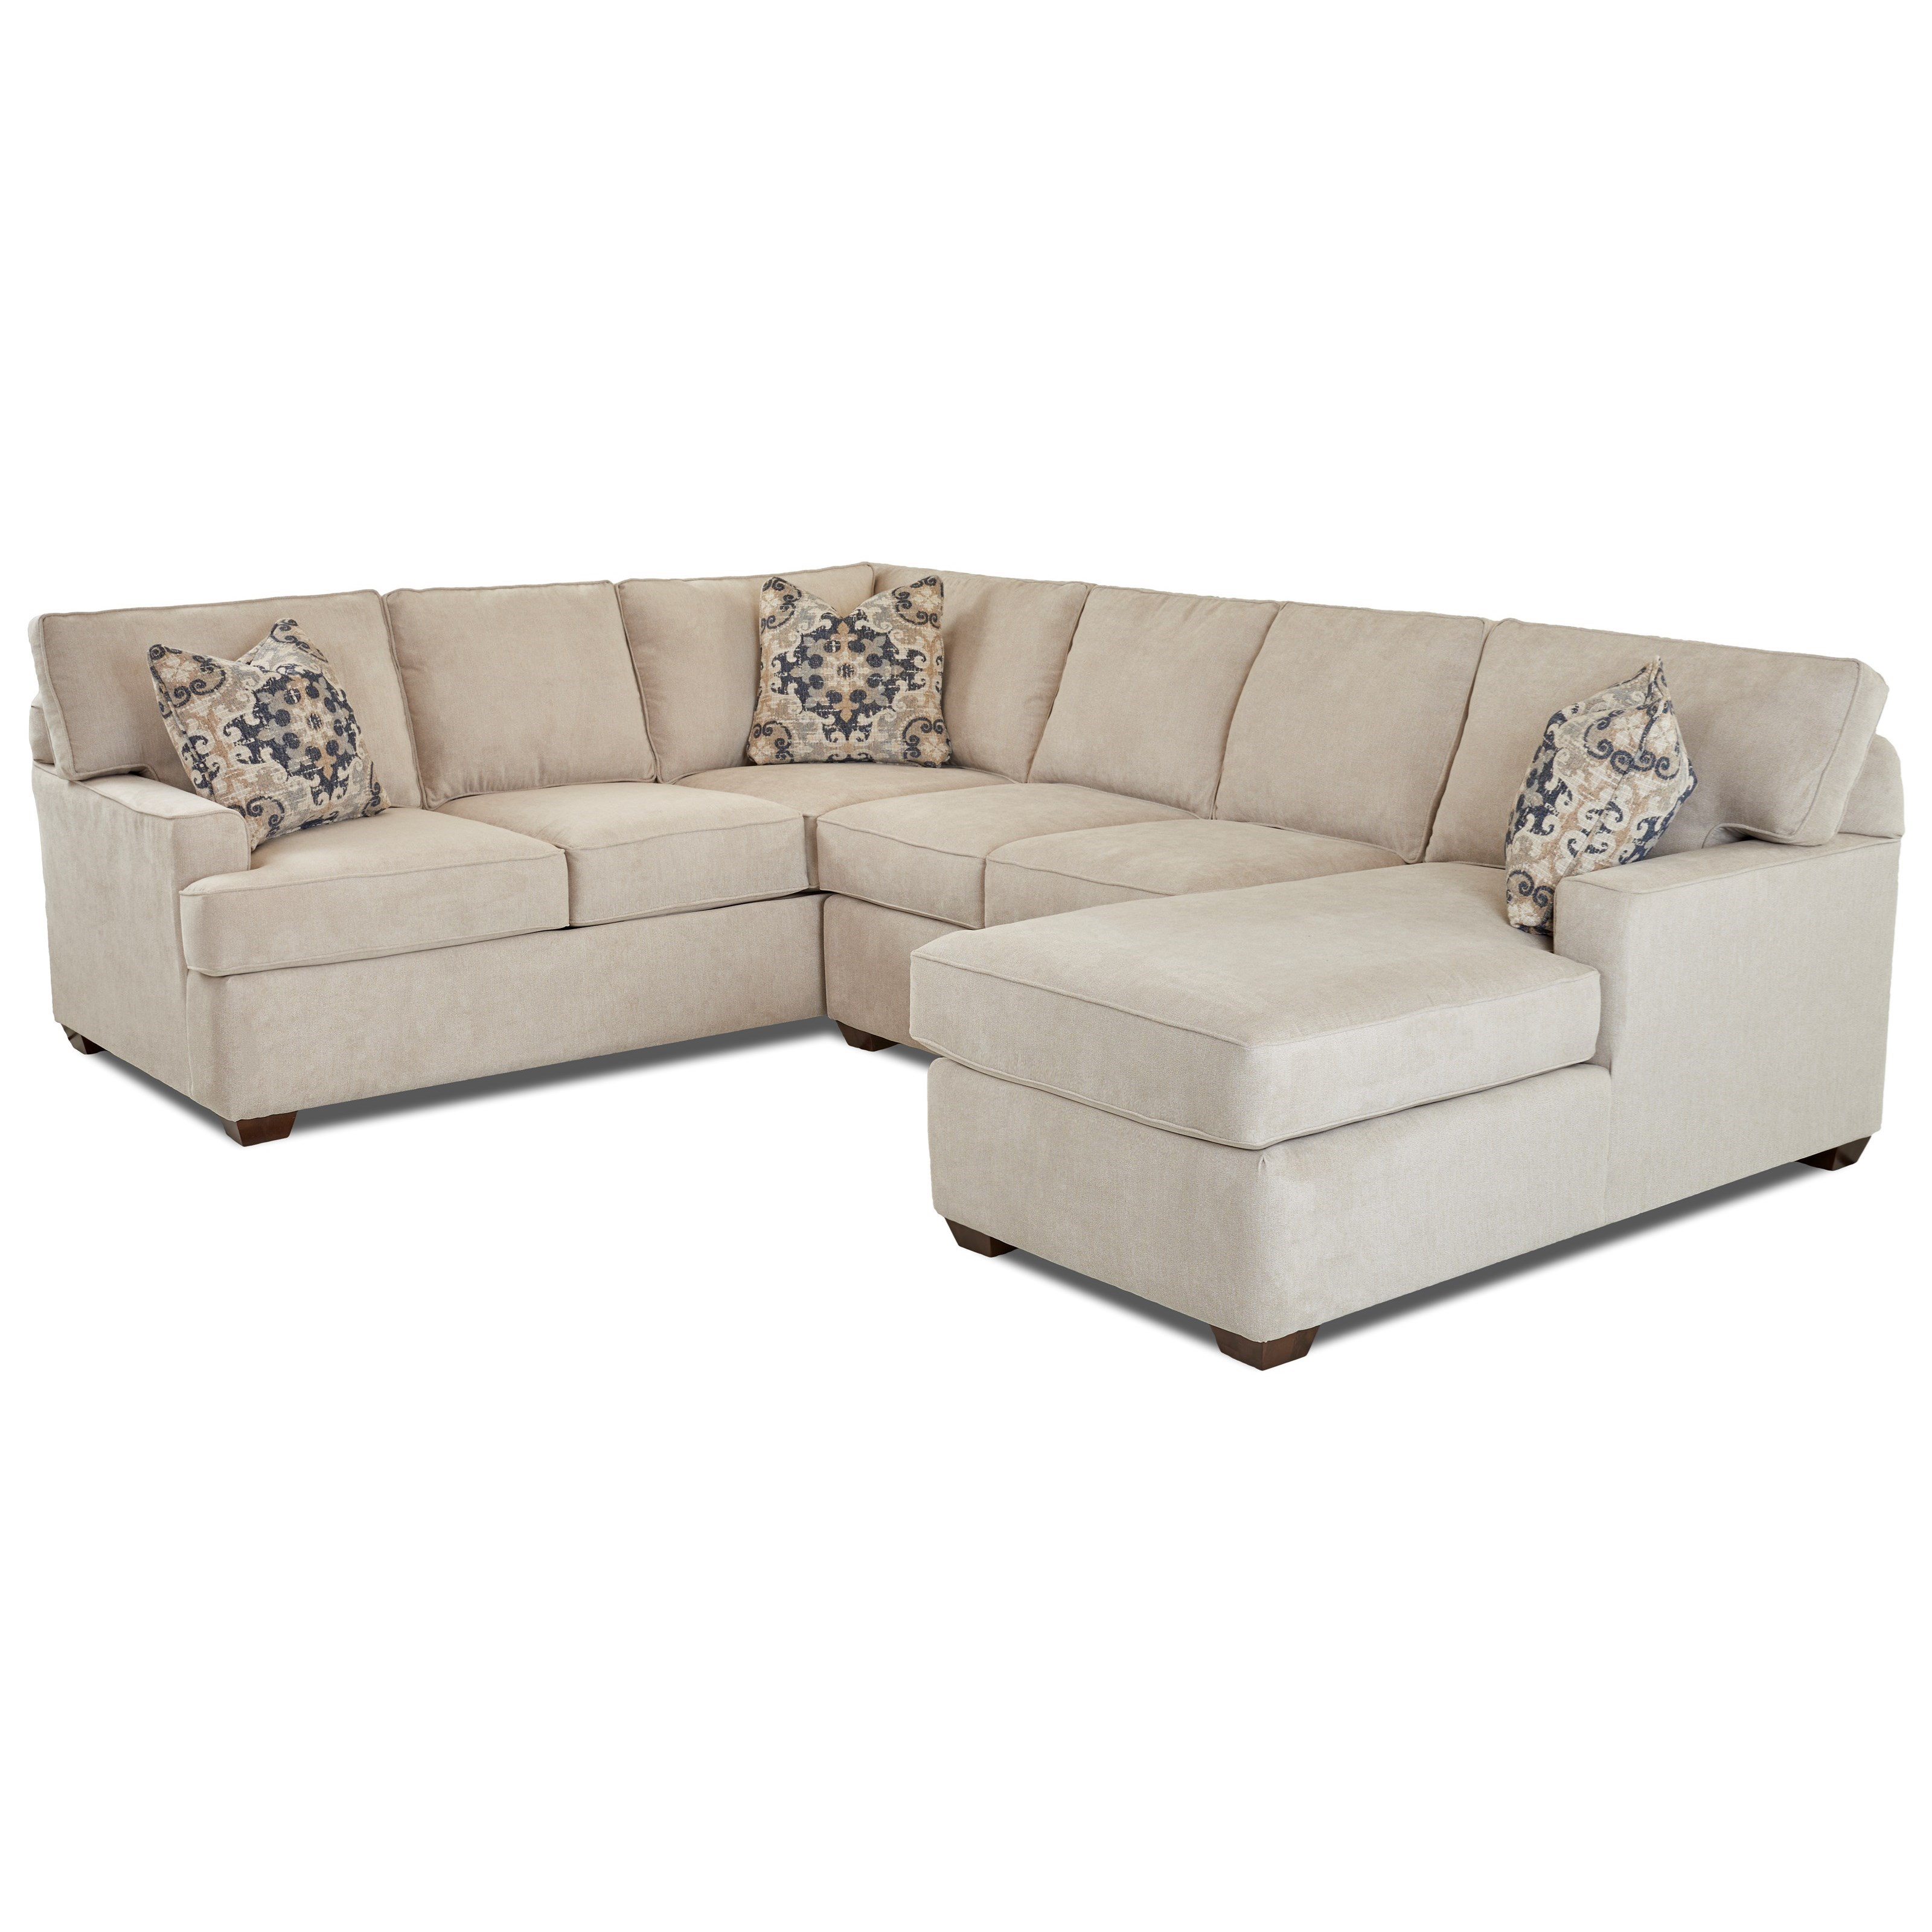 Pantego 3 Piece Sectional Sofa with RAF Chaise  by Klaussner at Northeast Factory Direct